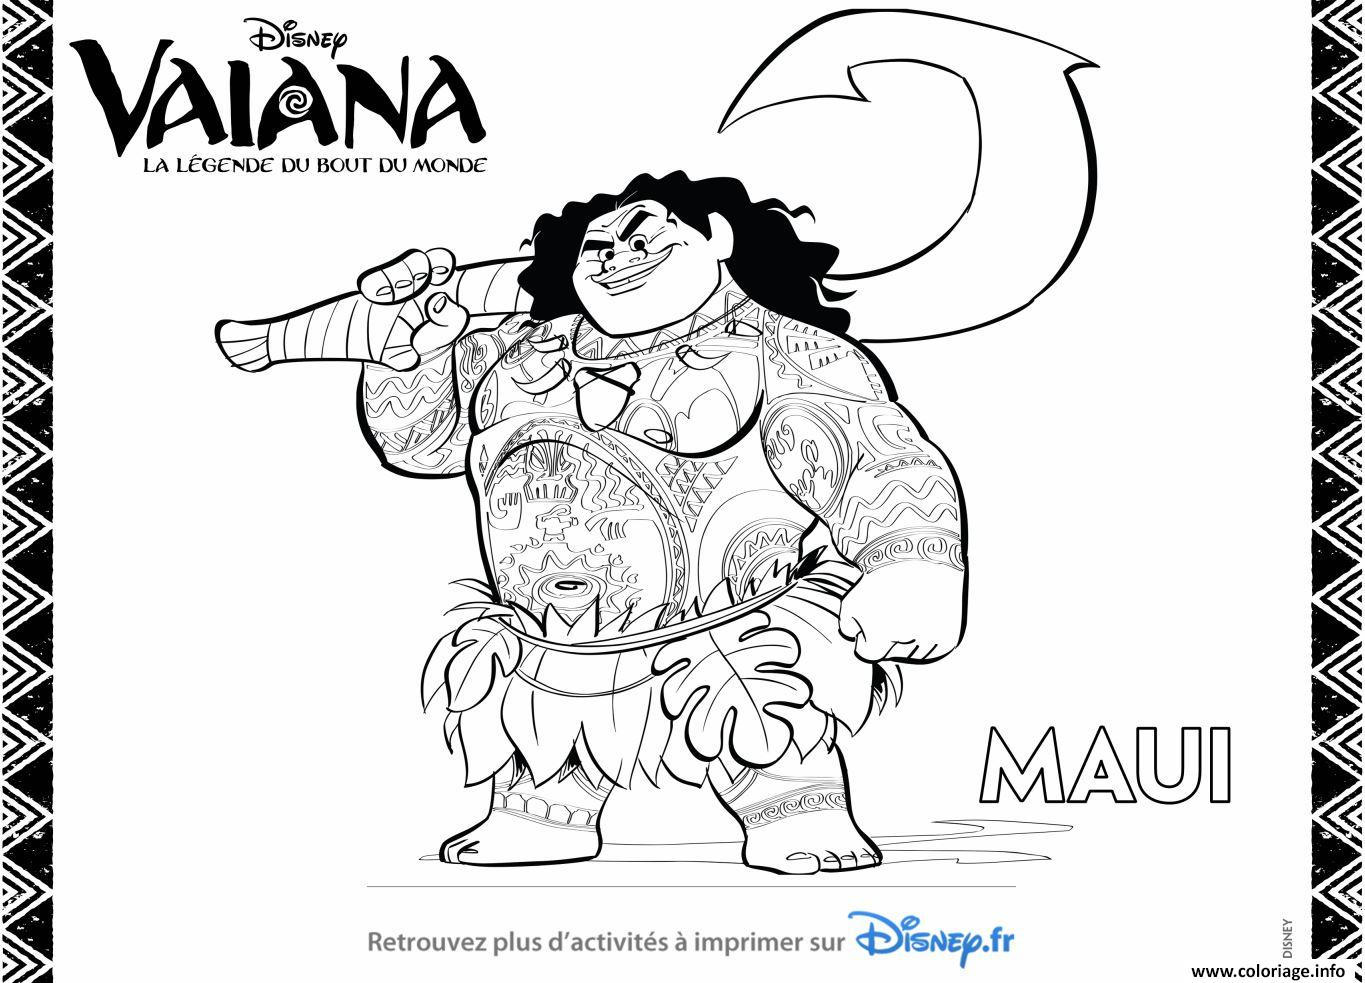 Coloriage princesse disney avec vaina - Coloriage disney ...